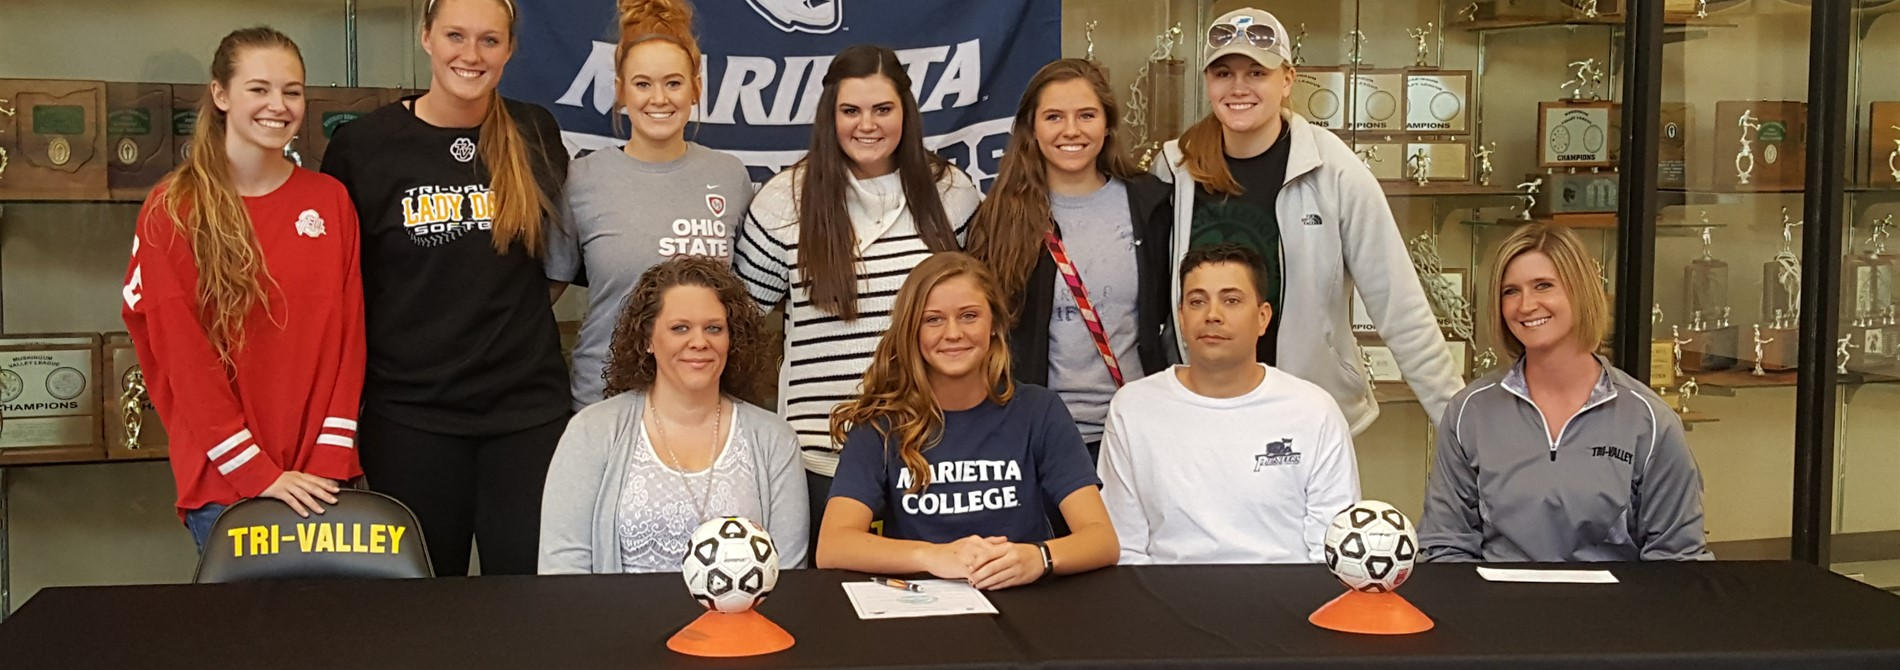 Chloe Williams signing to continue her soccer career at Marietta College